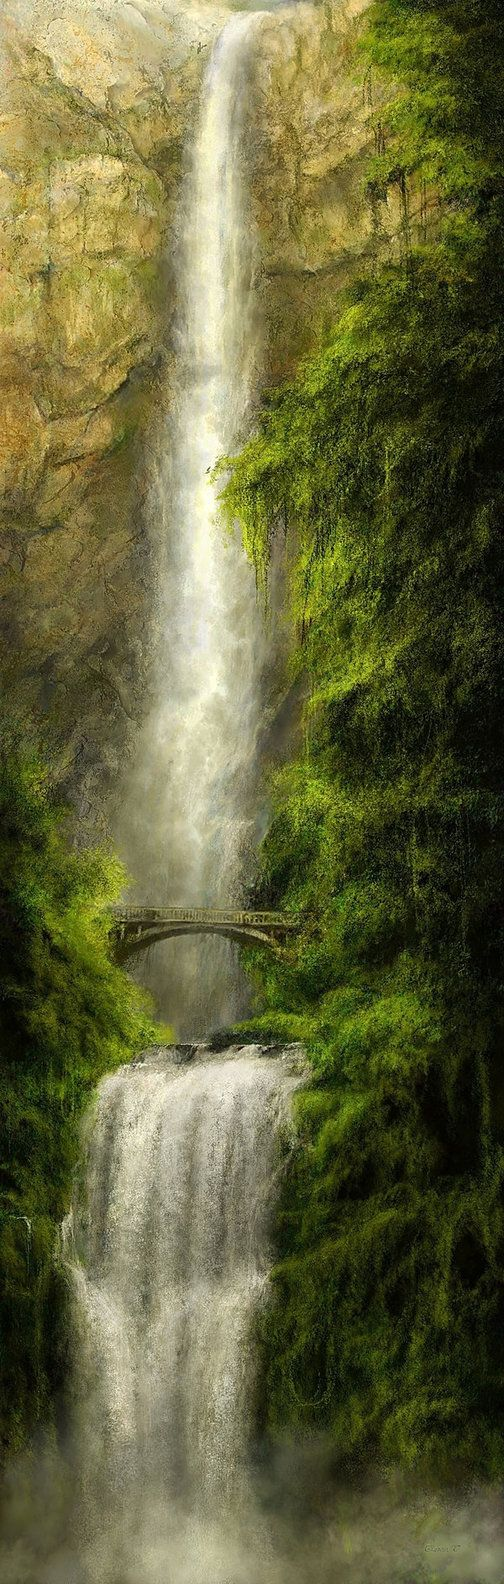 Multnomah Falls ~ a waterfall as magnificent and memorable as any in the country. Located on the Oregon side of the Columbia River Gorge, along the historic Columbia River Highway.